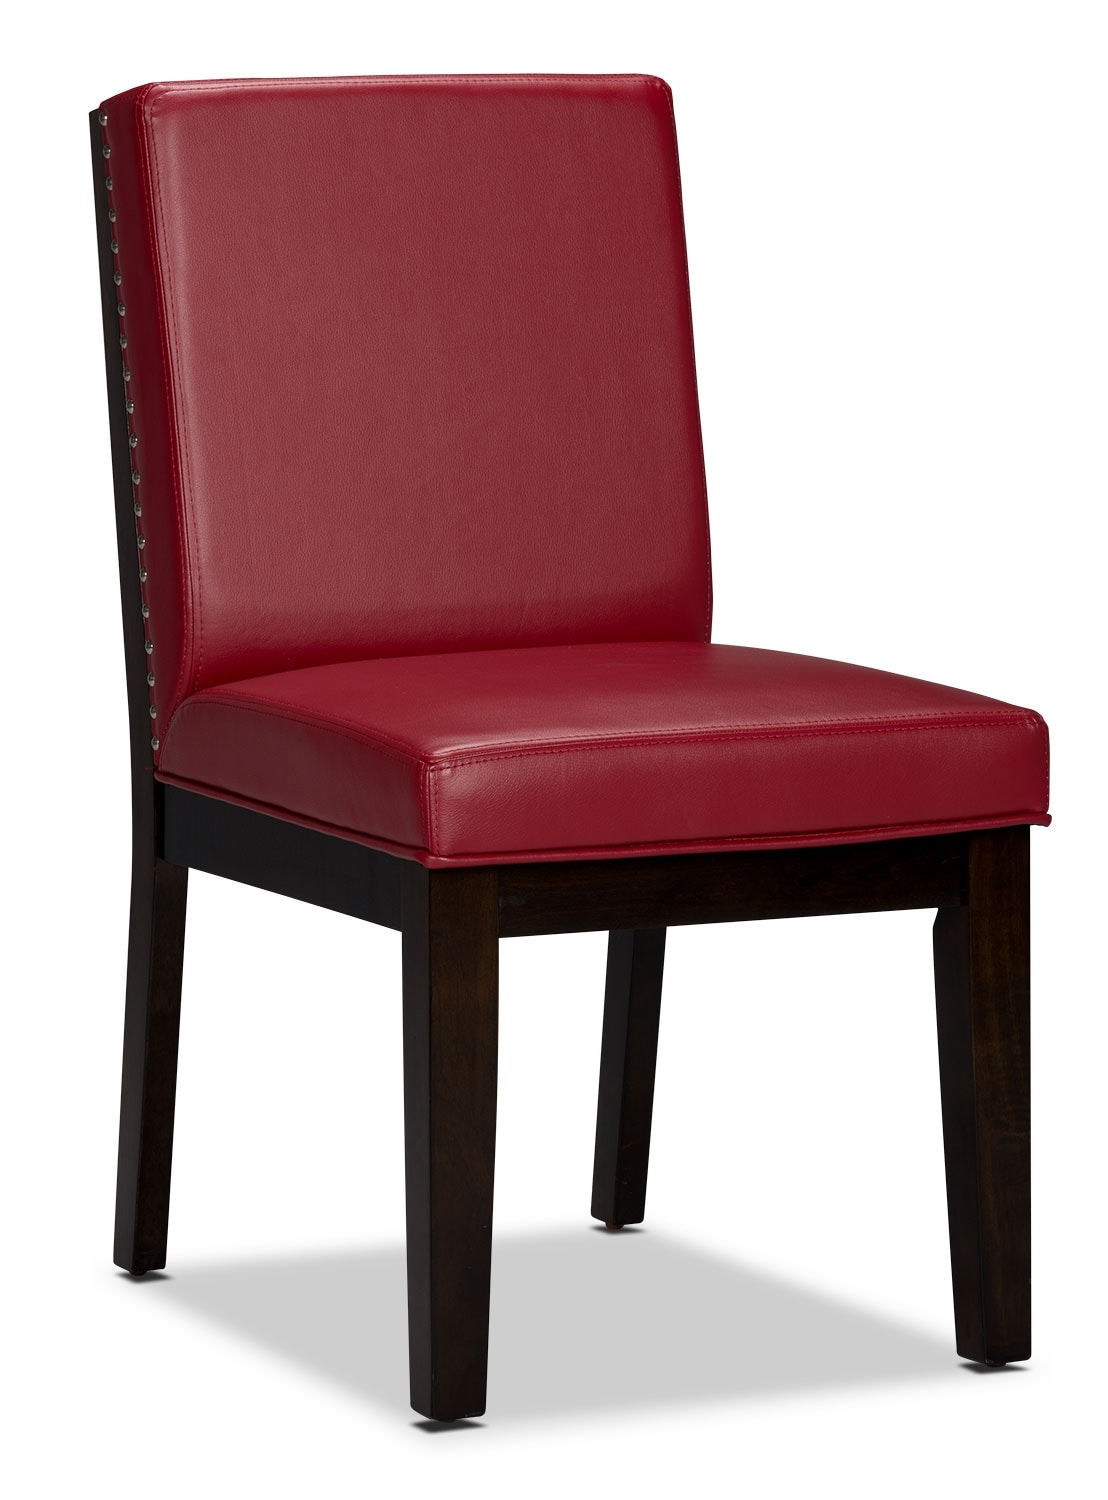 Dining Room Furniture - Couture Side Chair - Red